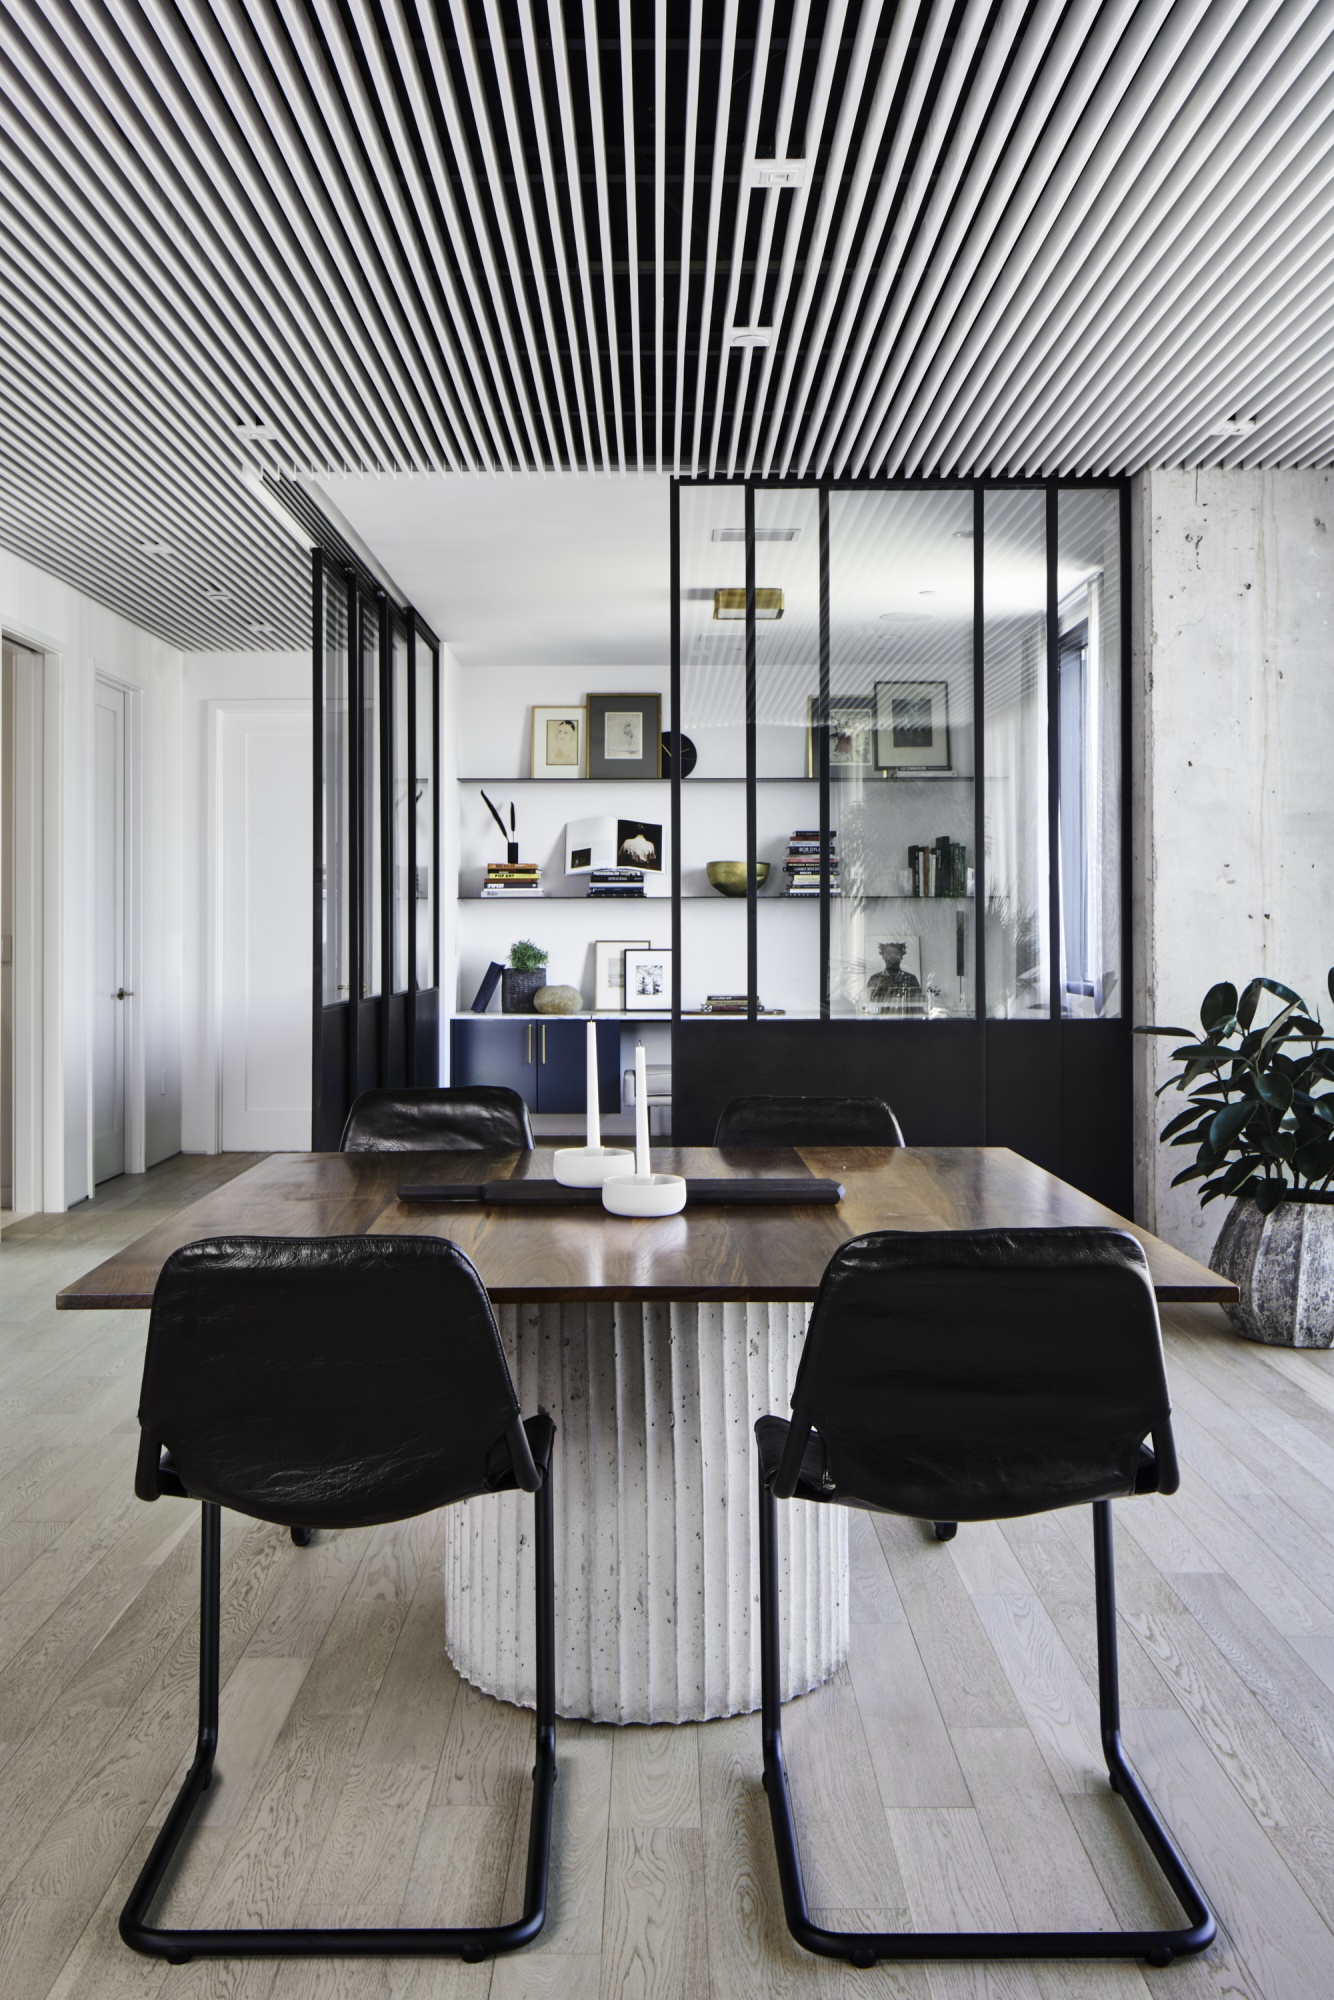 Slatted suspended ceiling creates openness throughout.